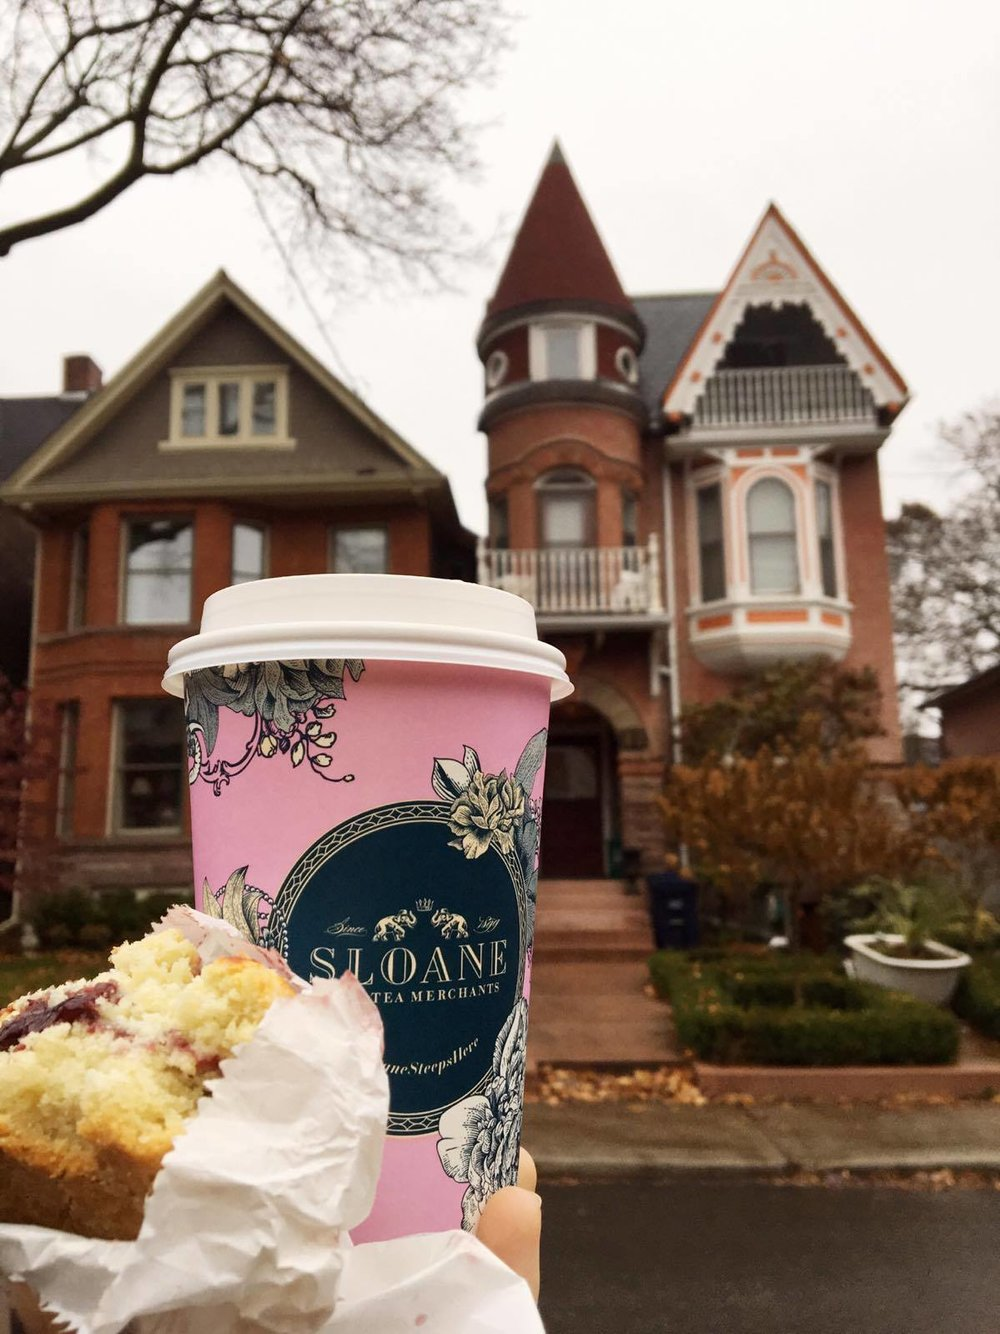 Kitten and the Bear | Sloane Tea and Scone | jumpseatjenny | Travel and Lifestyle Blogger | Toronto Ontario